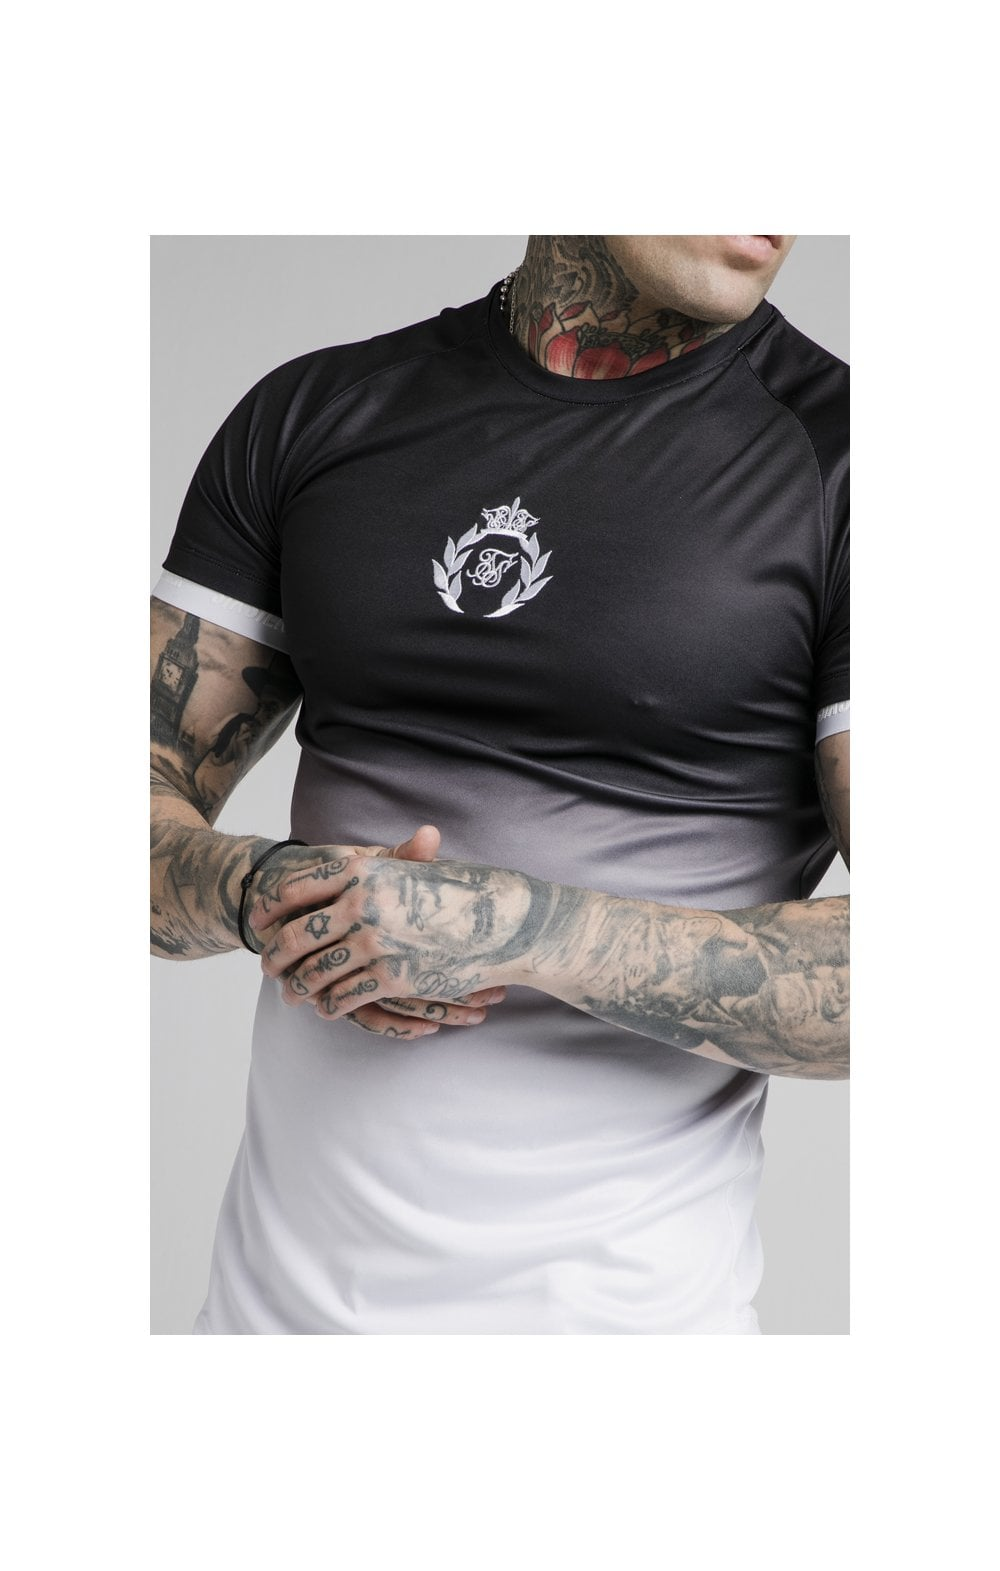 Load image into Gallery viewer, SikSilk S/S Prestige Fade Inset Tech Tee - Black & White (1)